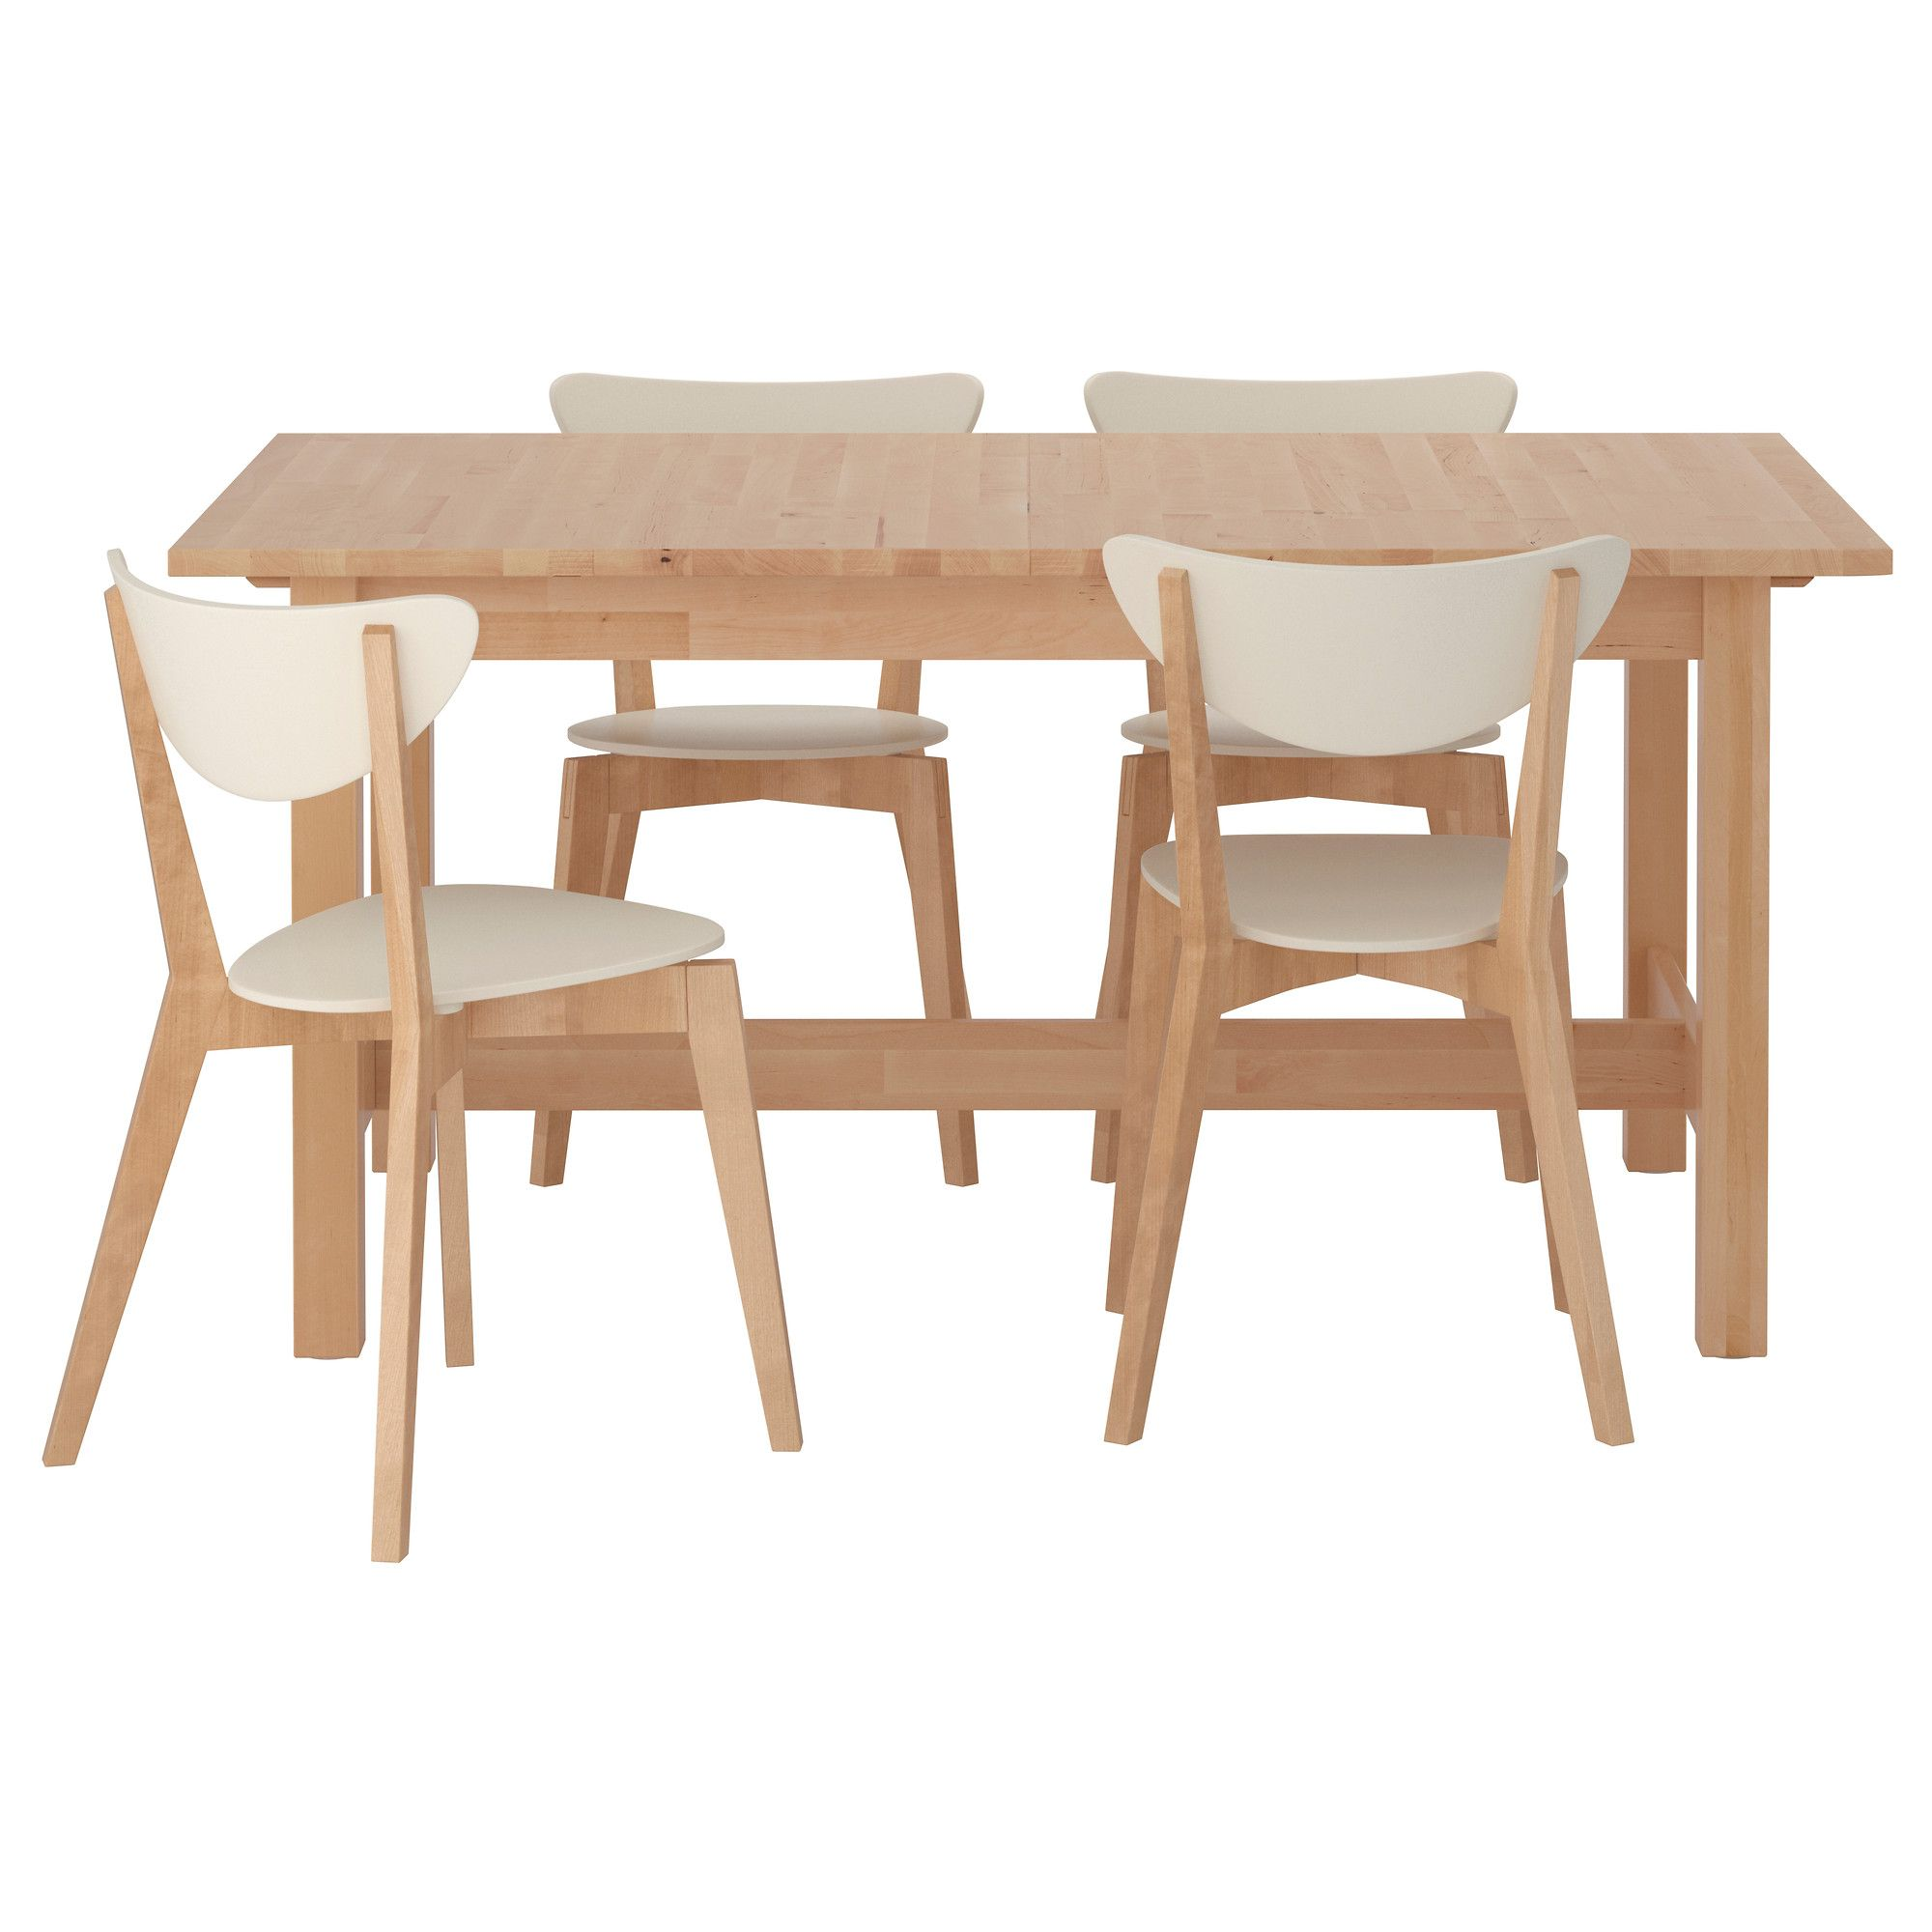 Norden nordmyra table et 4 chaises 319 ikea for the home pinterest - Table et chaise pas cher ikea ...